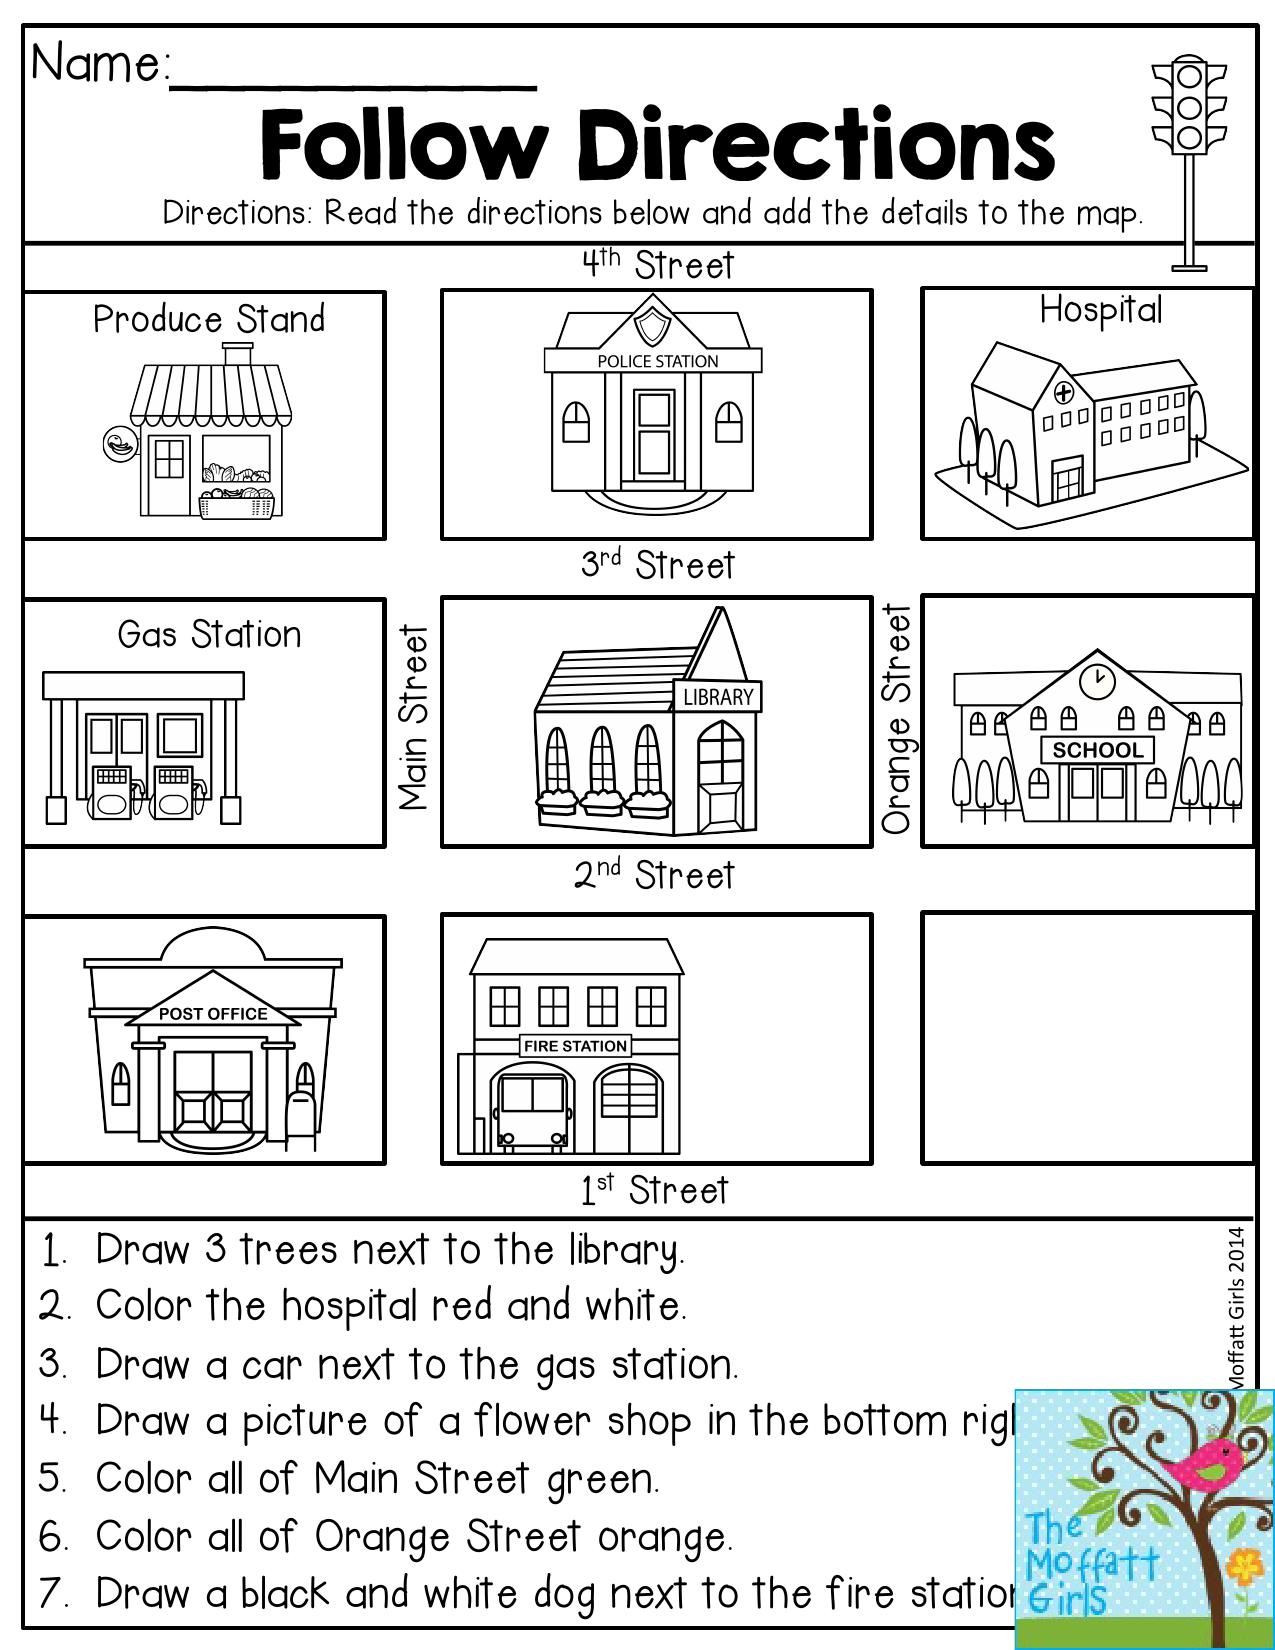 Following Directions Printables Back to School Packets